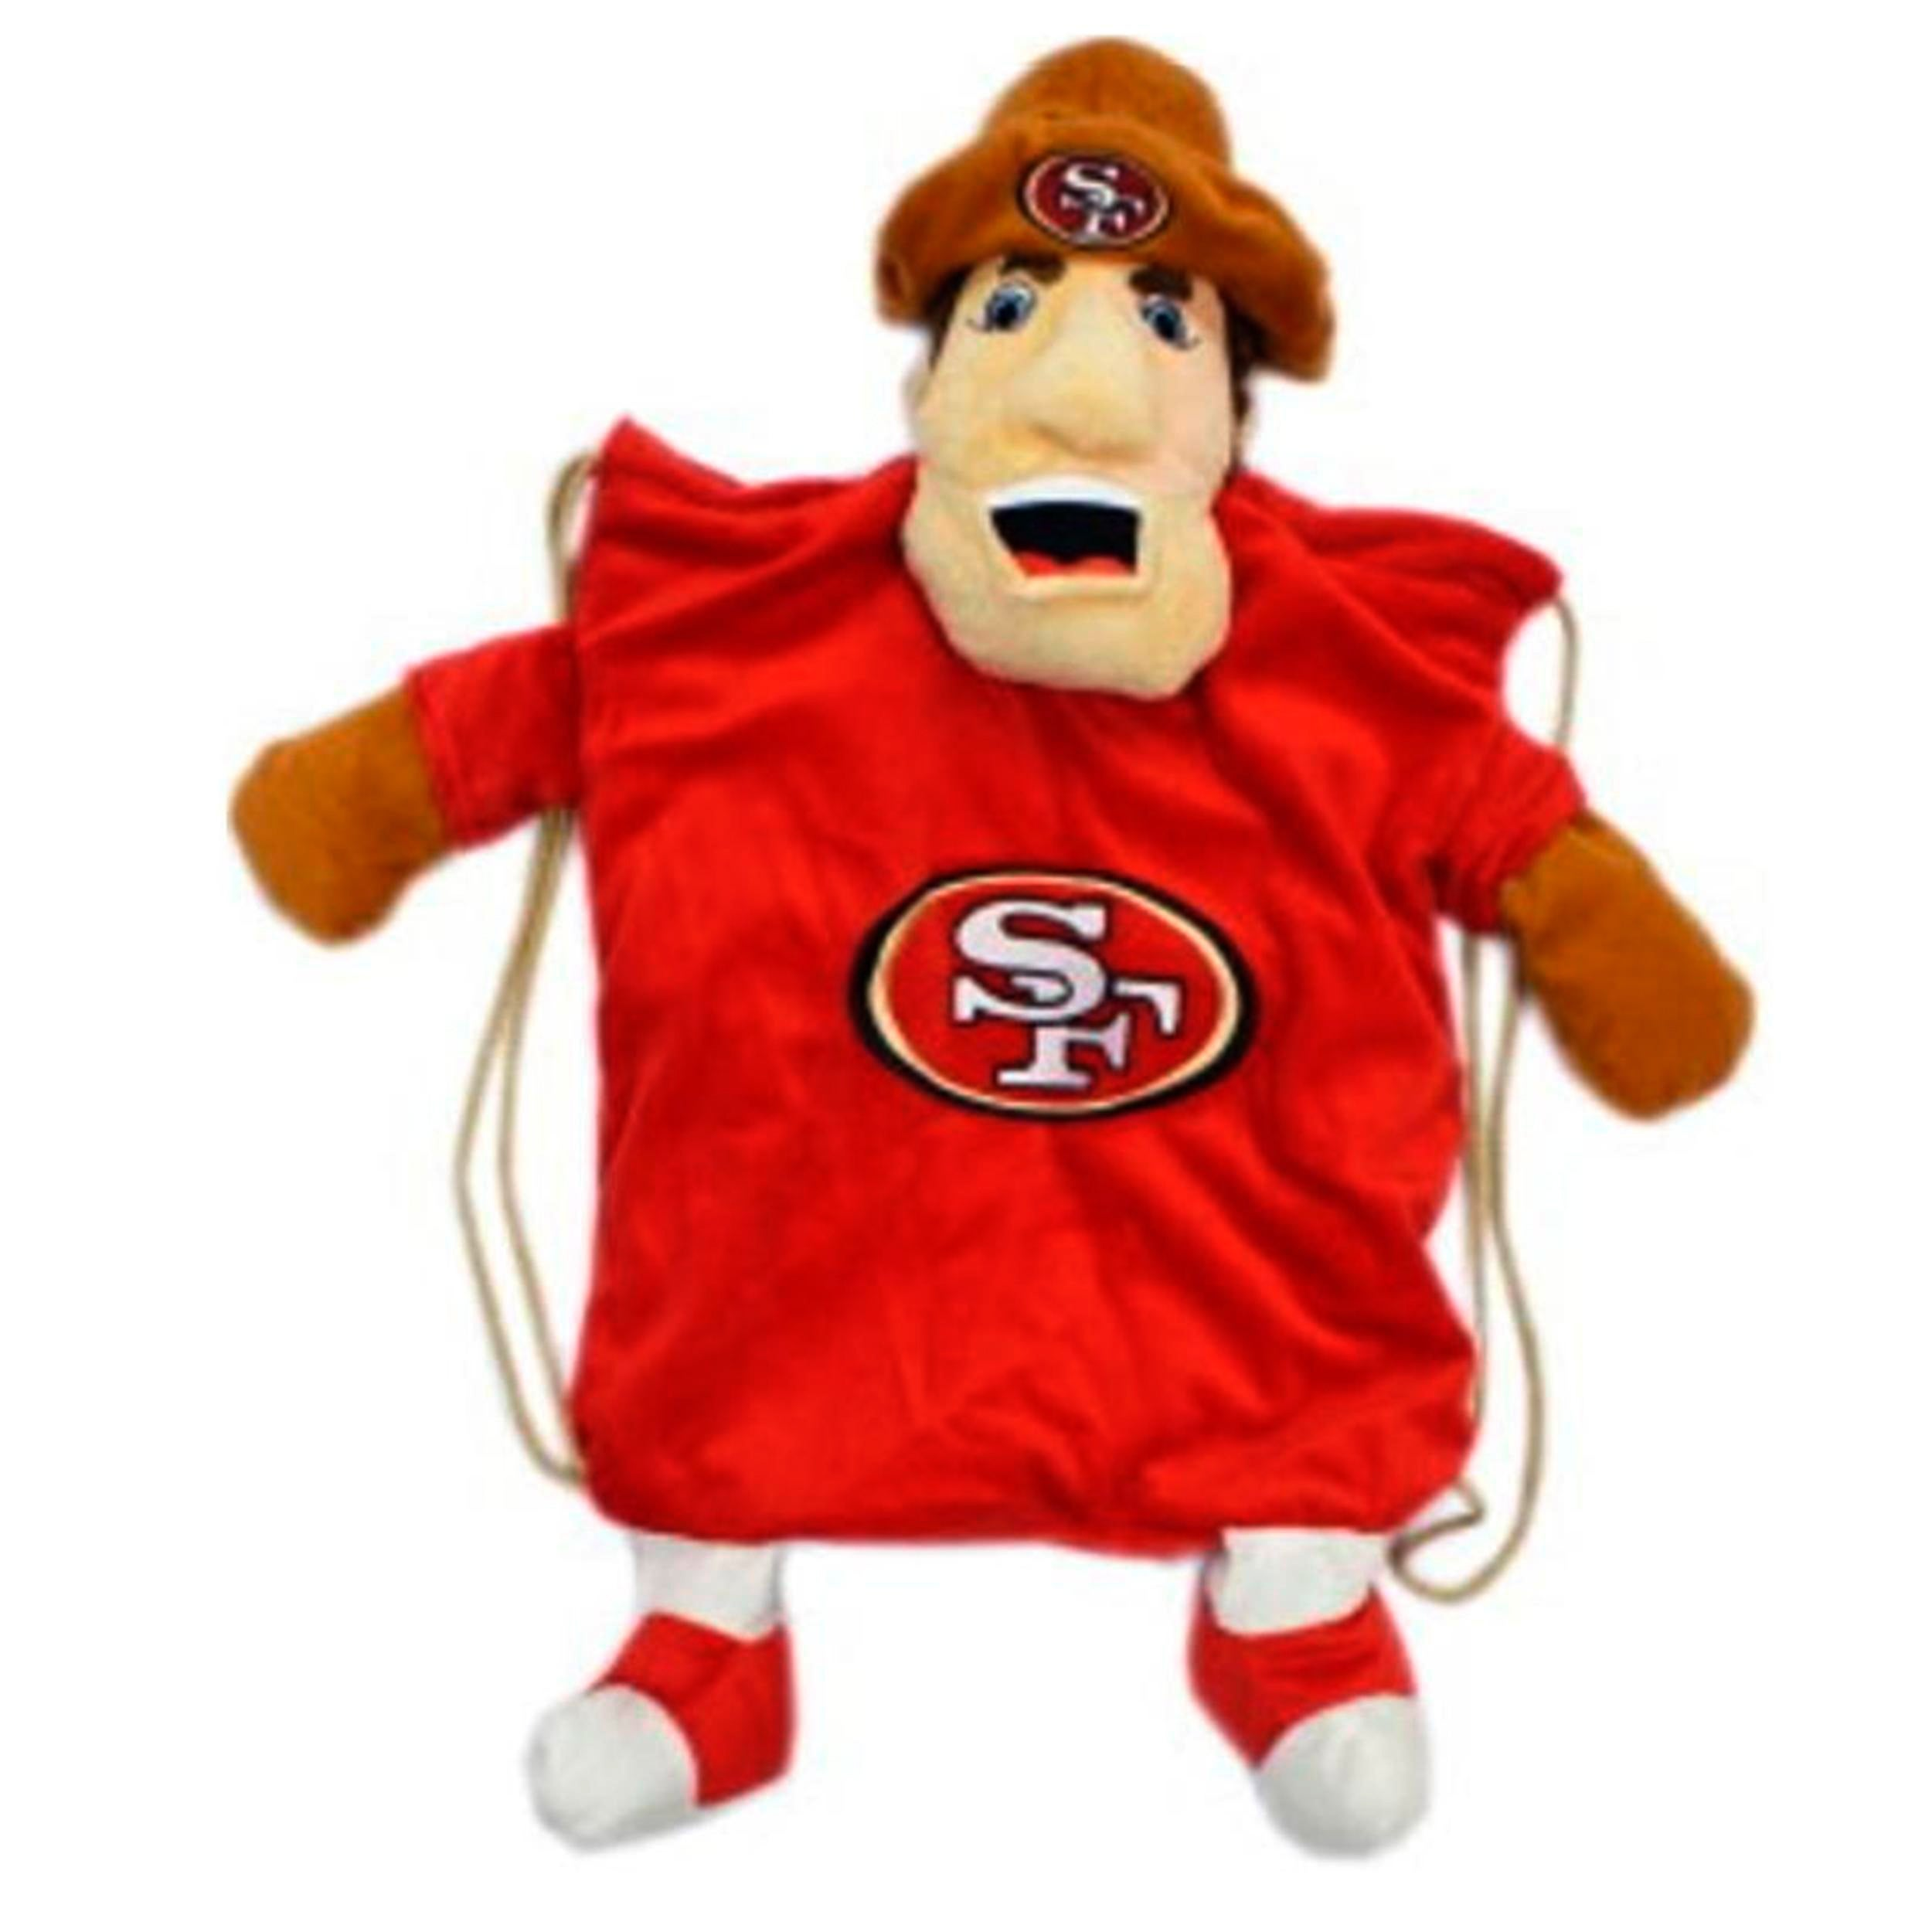 Forever Collectibles Nfl San Francisco 49ers Backpack Pal